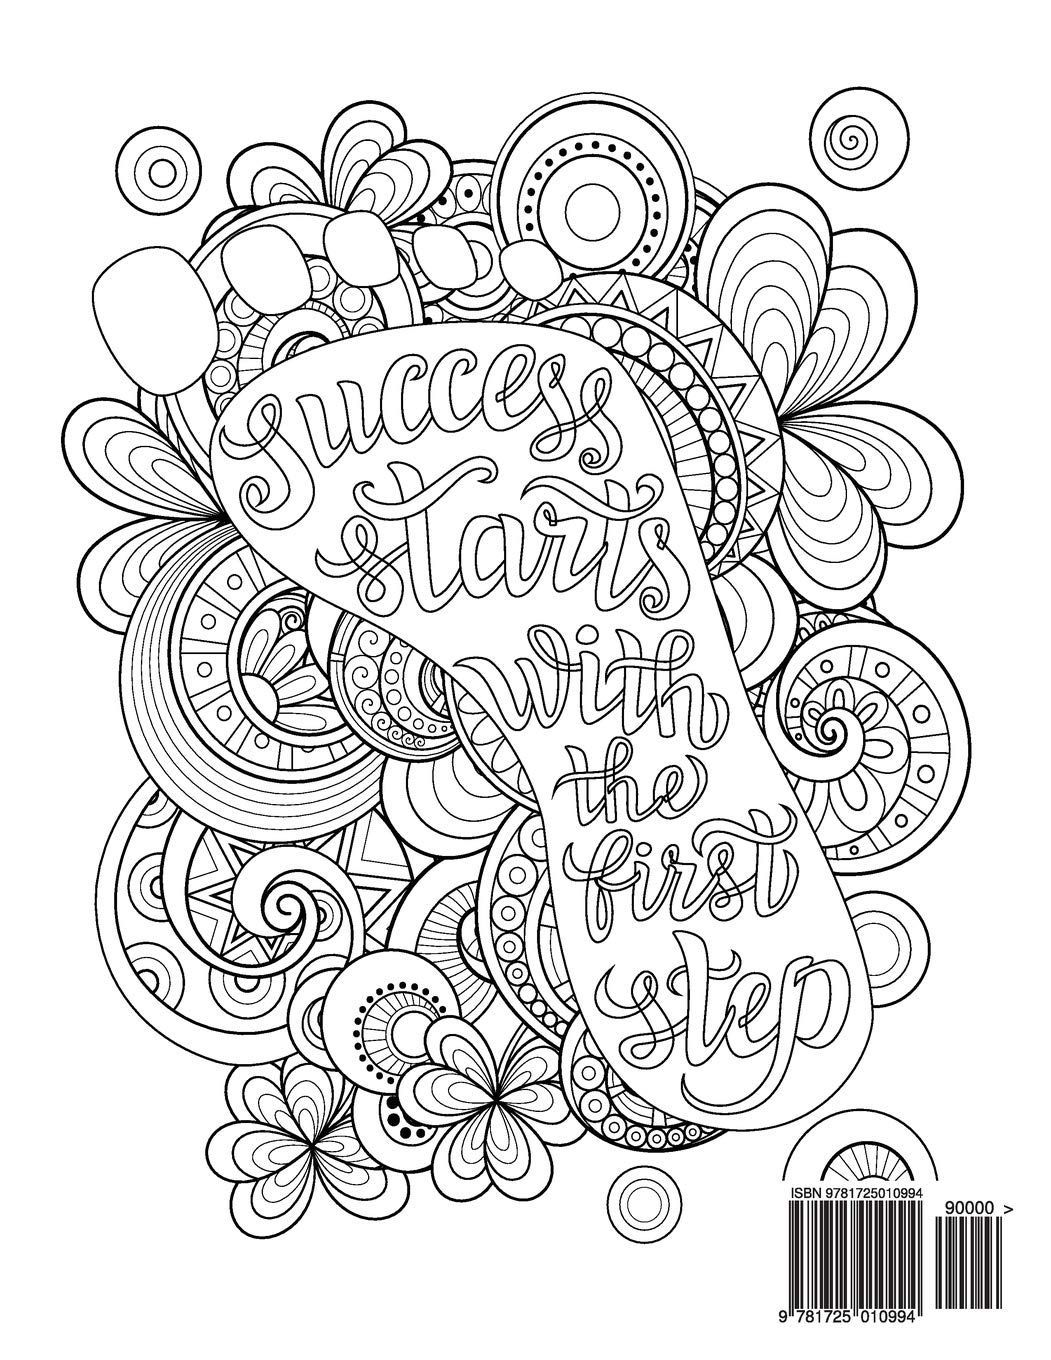 Pin By Jana Grube On Coloring Pages In 2020 Coloring Pages